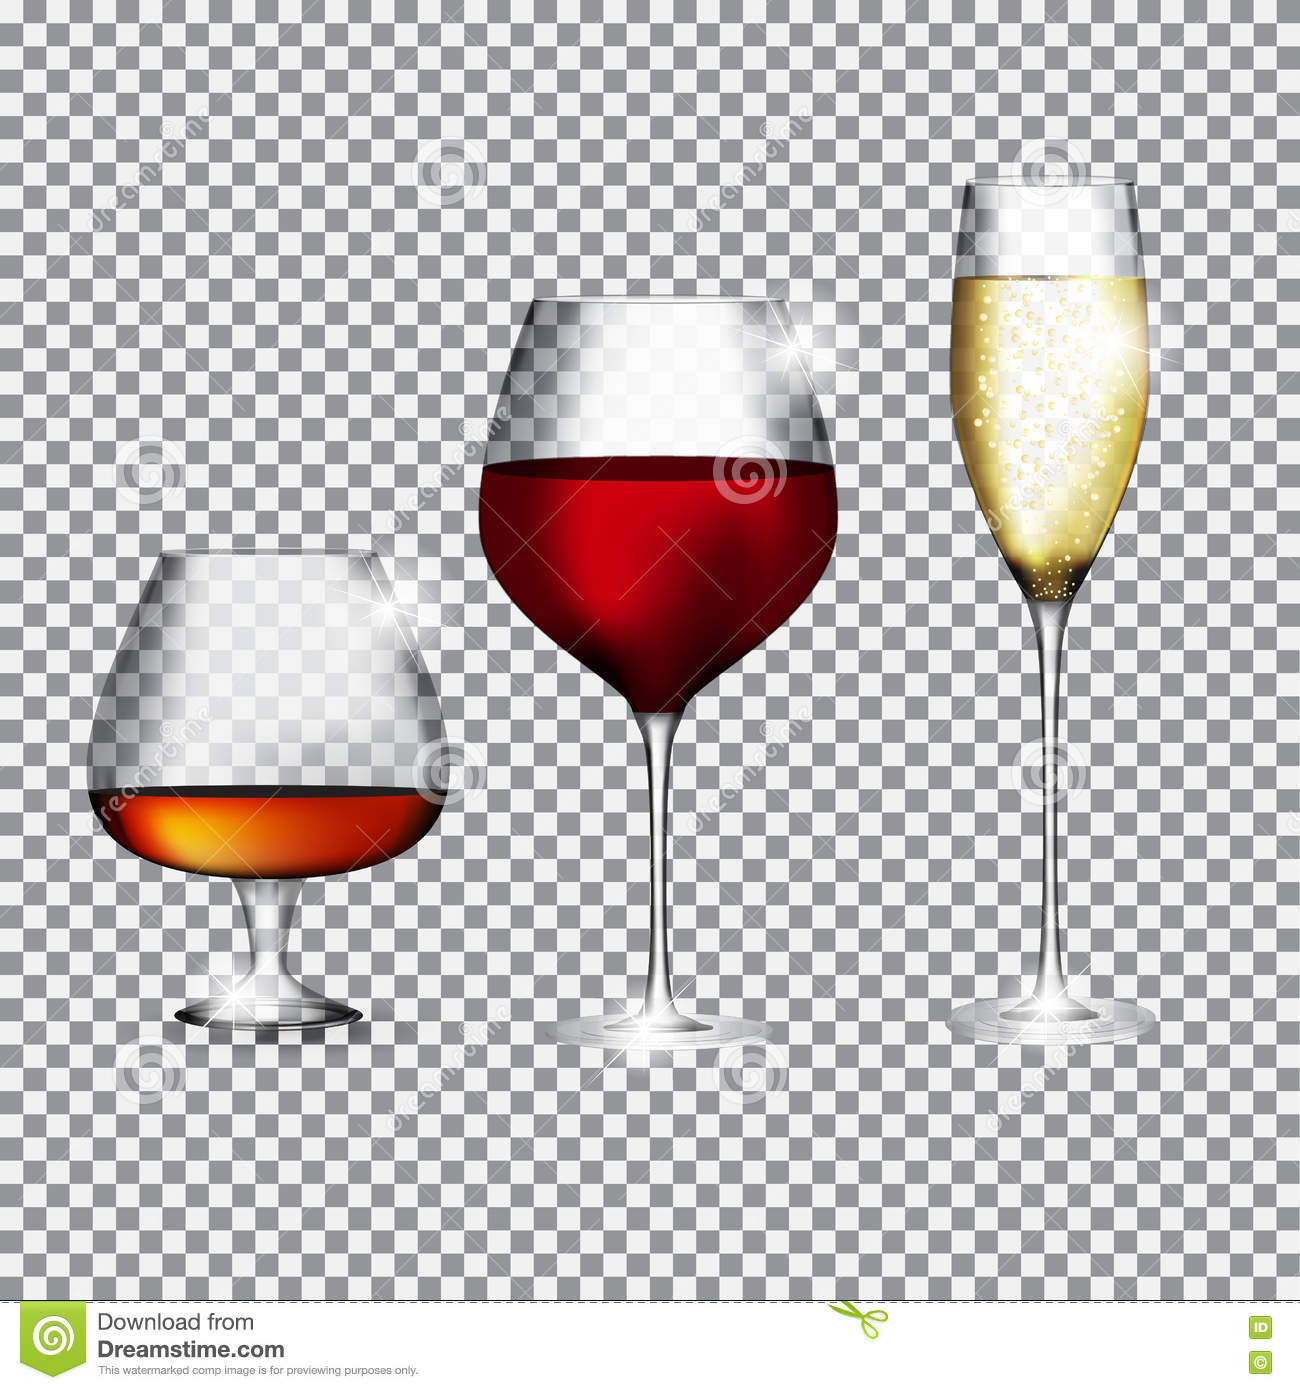 Girl Drinking Alcohol Wallpaper Glass Of Champagne Cognac And Wine On Transparent